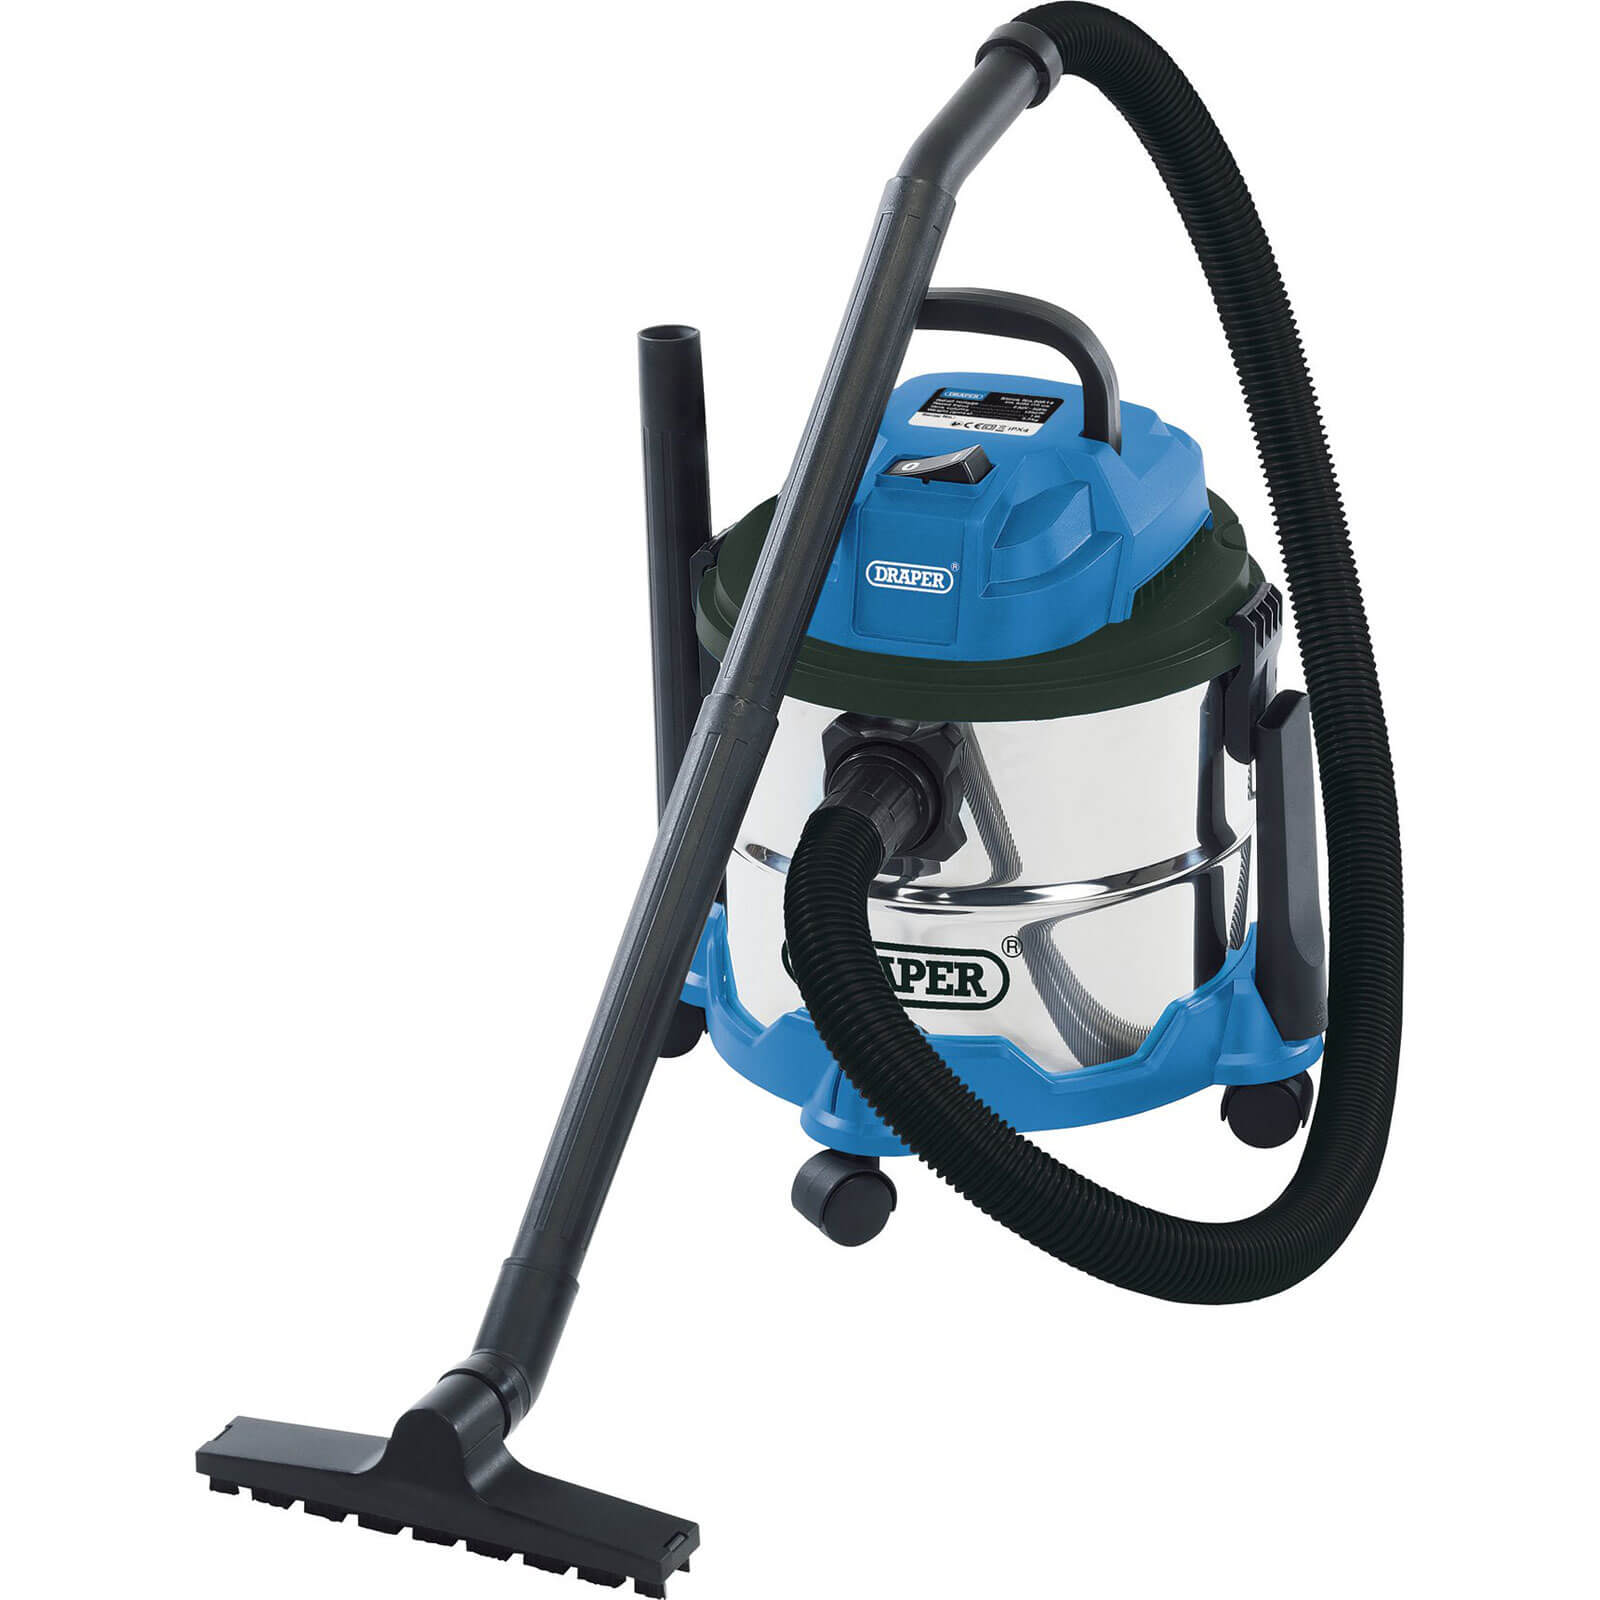 Draper 15L Wet and Dry Vacuum Cleaner 1250 Watts 240v